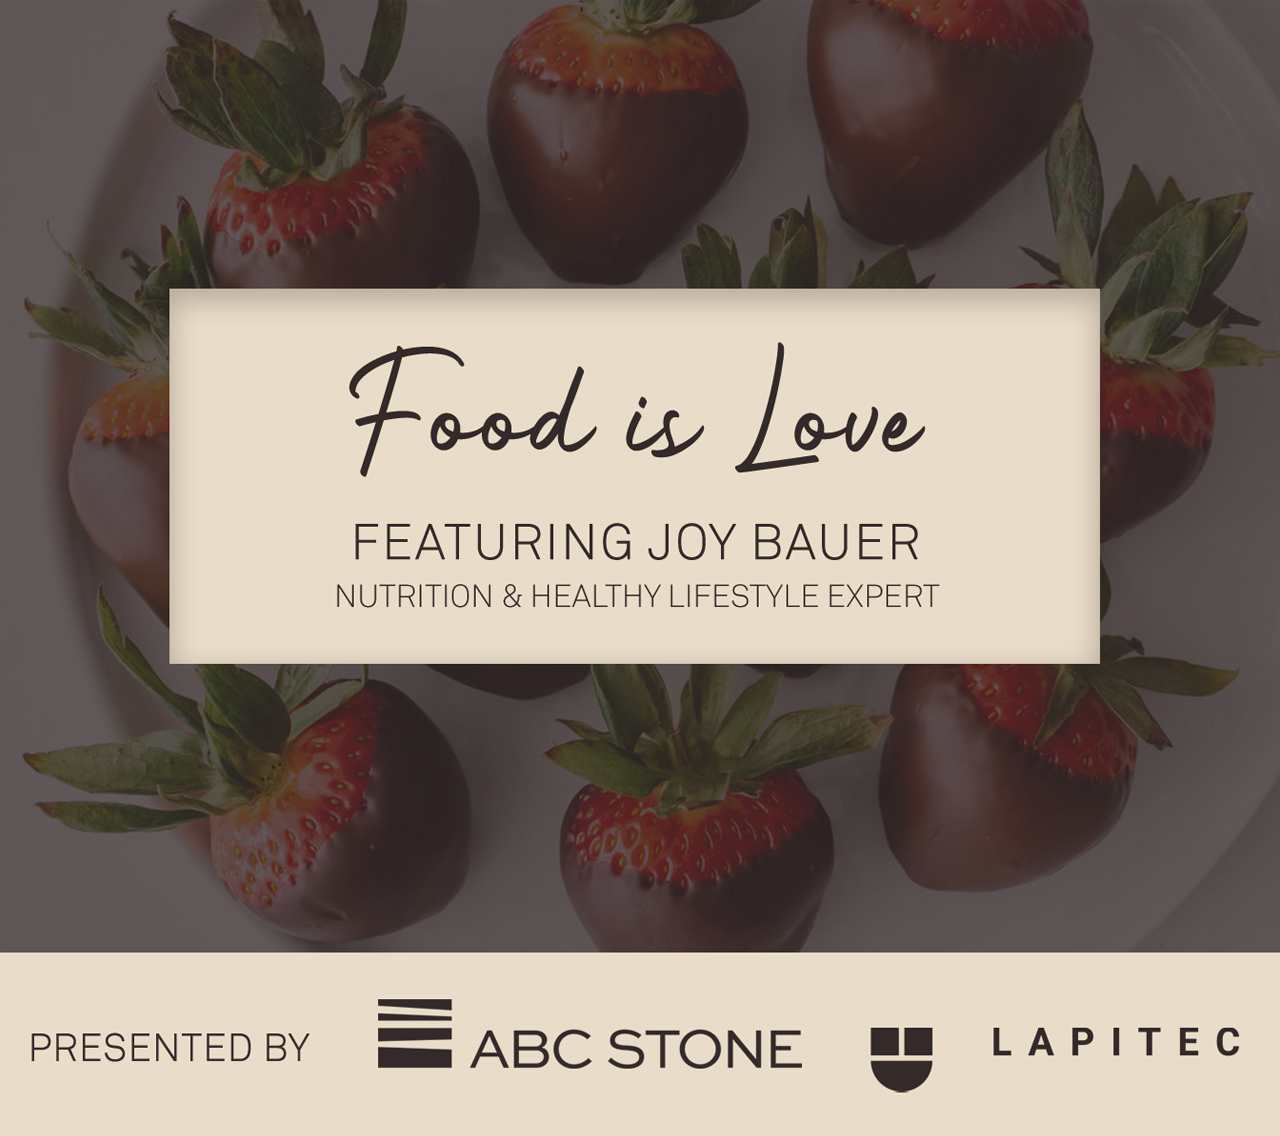 Food is Love | Featuring Joy Bauer and Hosted by Keith Baltimore